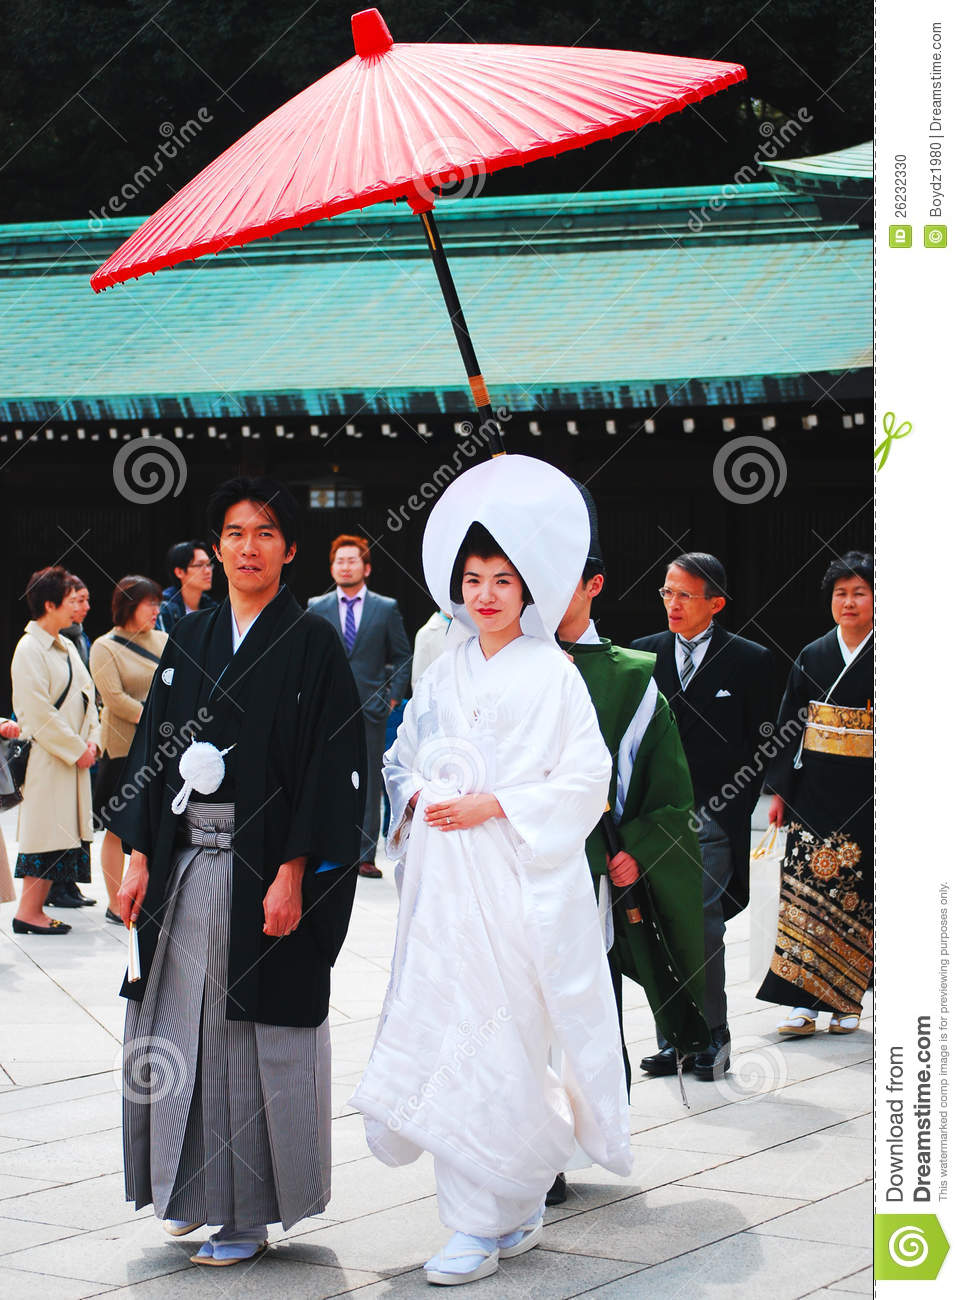 Traditional japanese wedding editorial image image 26232330 for Traditionelles japan